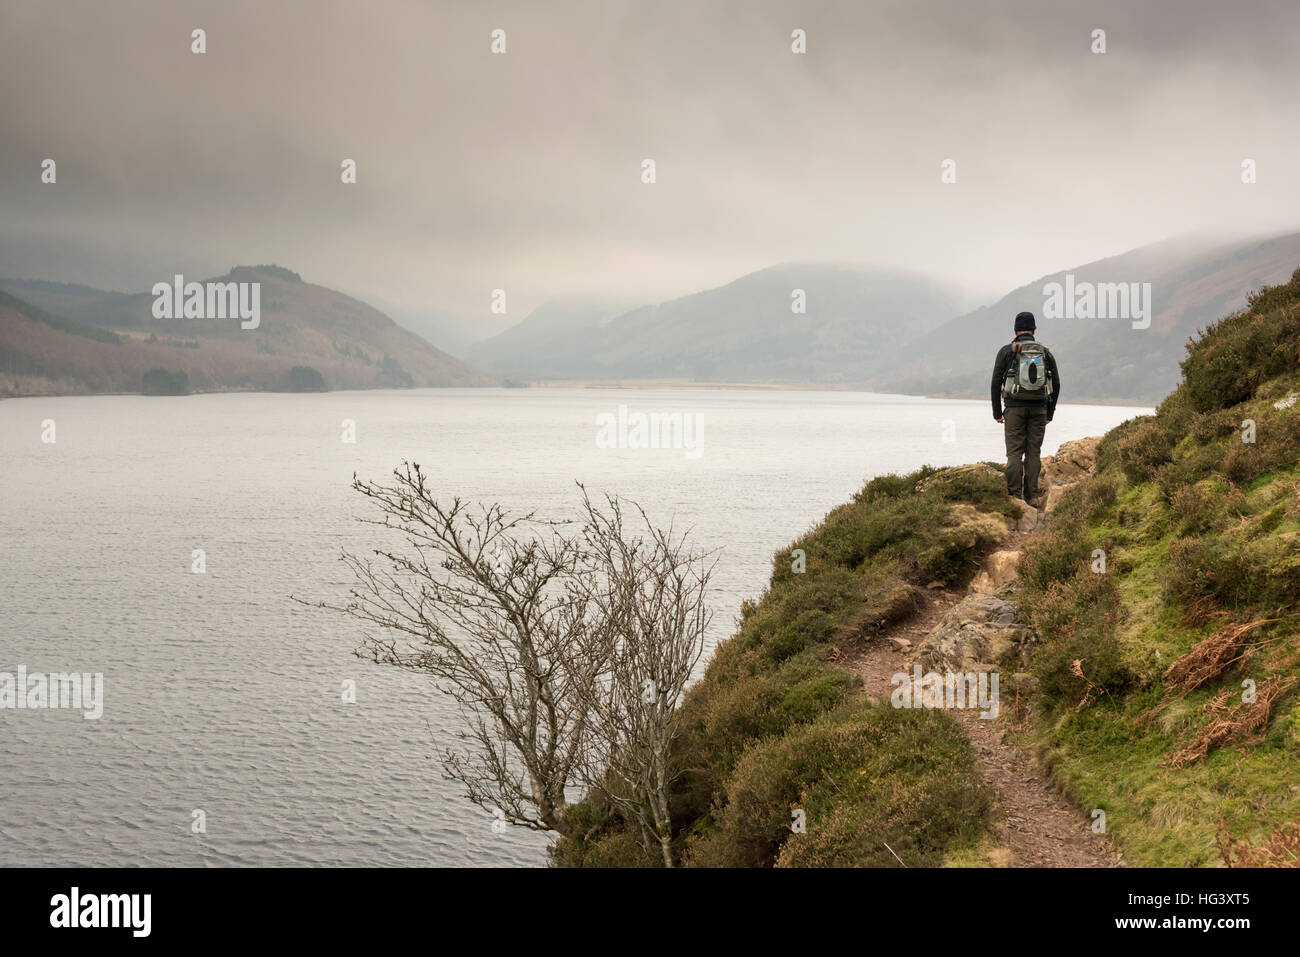 A man hill walking in the Lake District Cumbria UK on the shore of Ennerdale in overcast winter weather - Stock Image